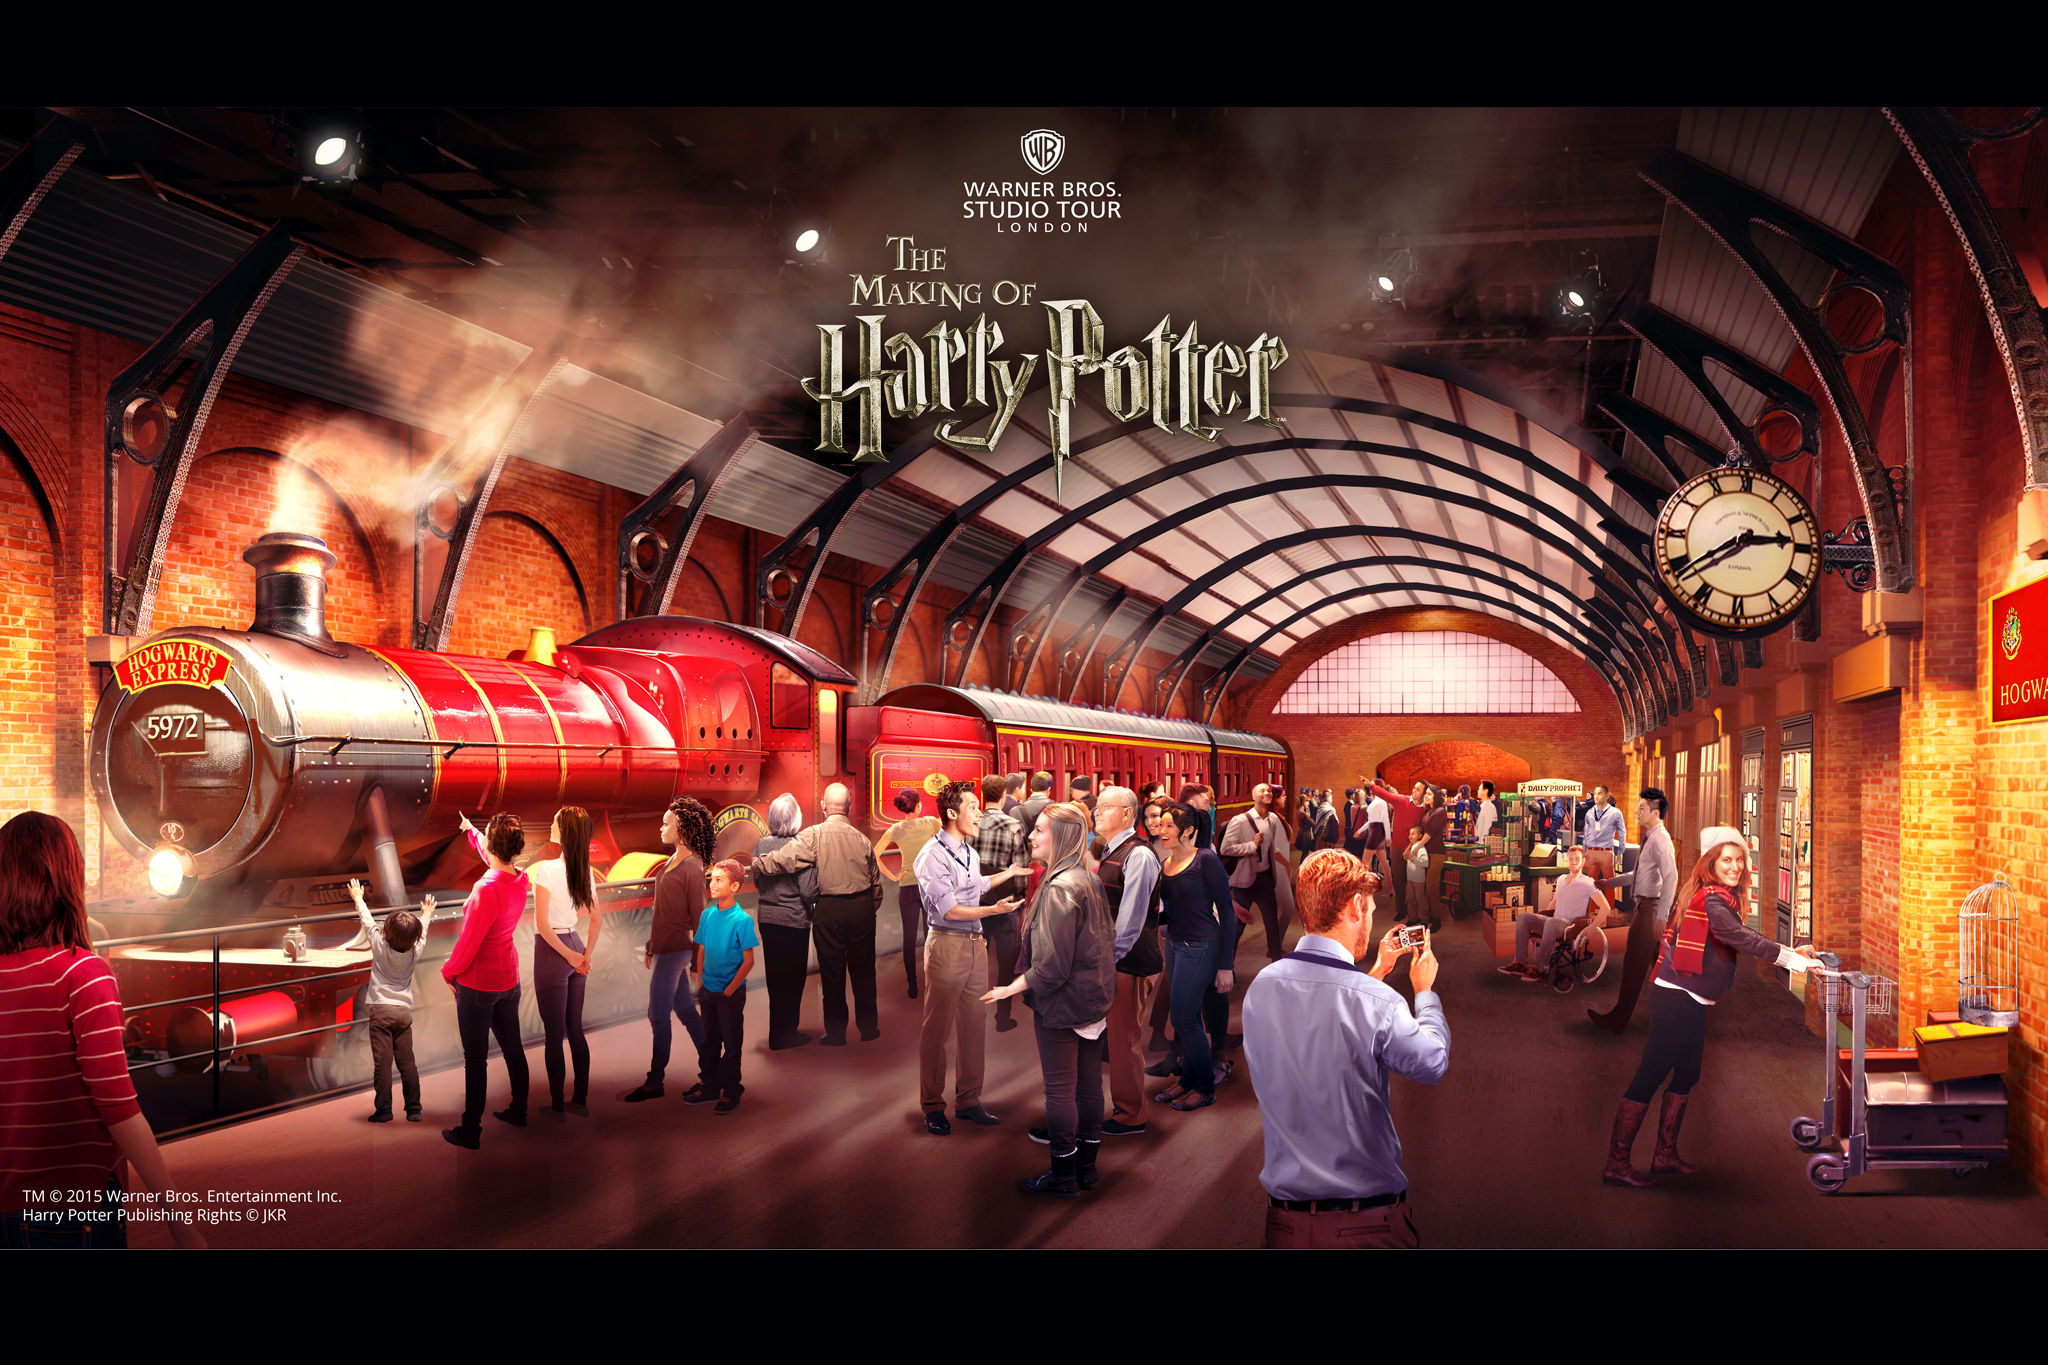 Warner Bros Studio: The Making of Harry Potter